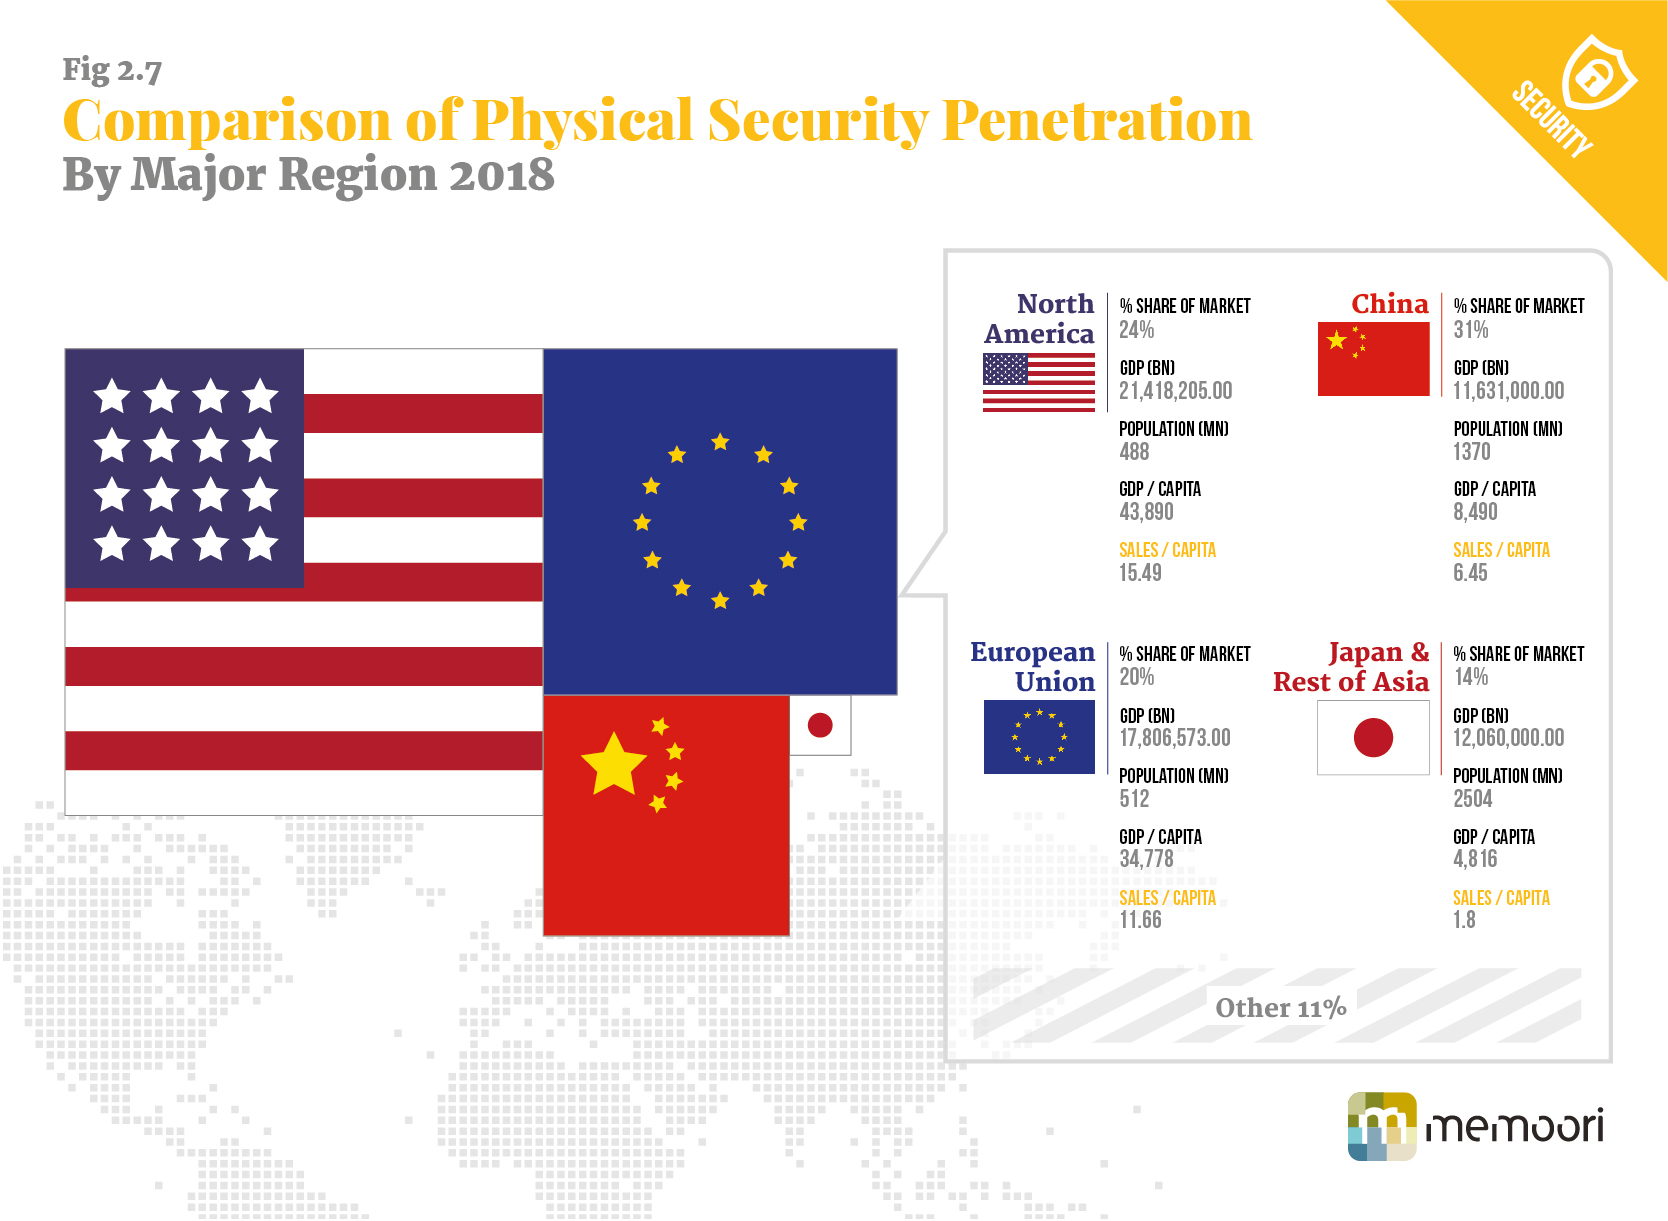 Comparison of Physical Security Penetration